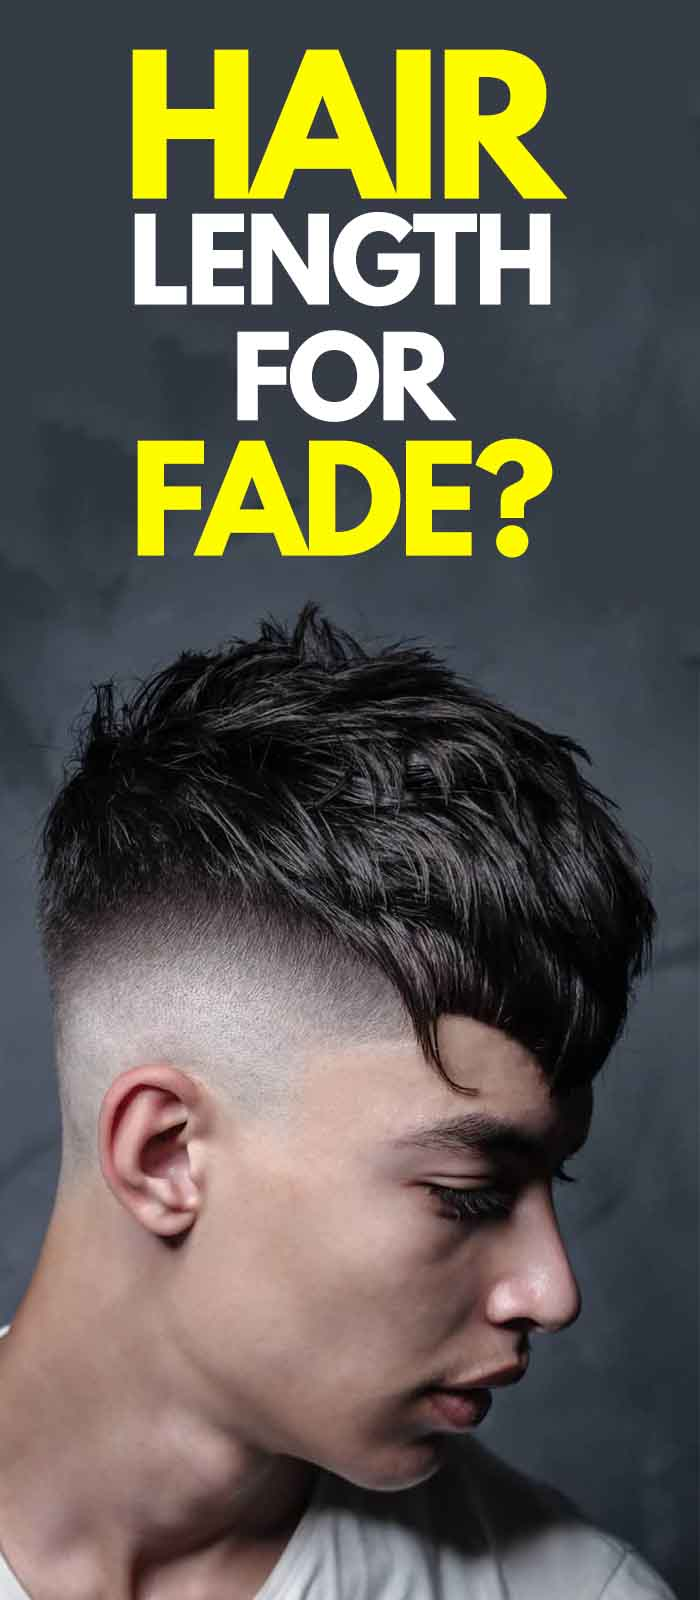 Hair Length For A Fade Hairstyle